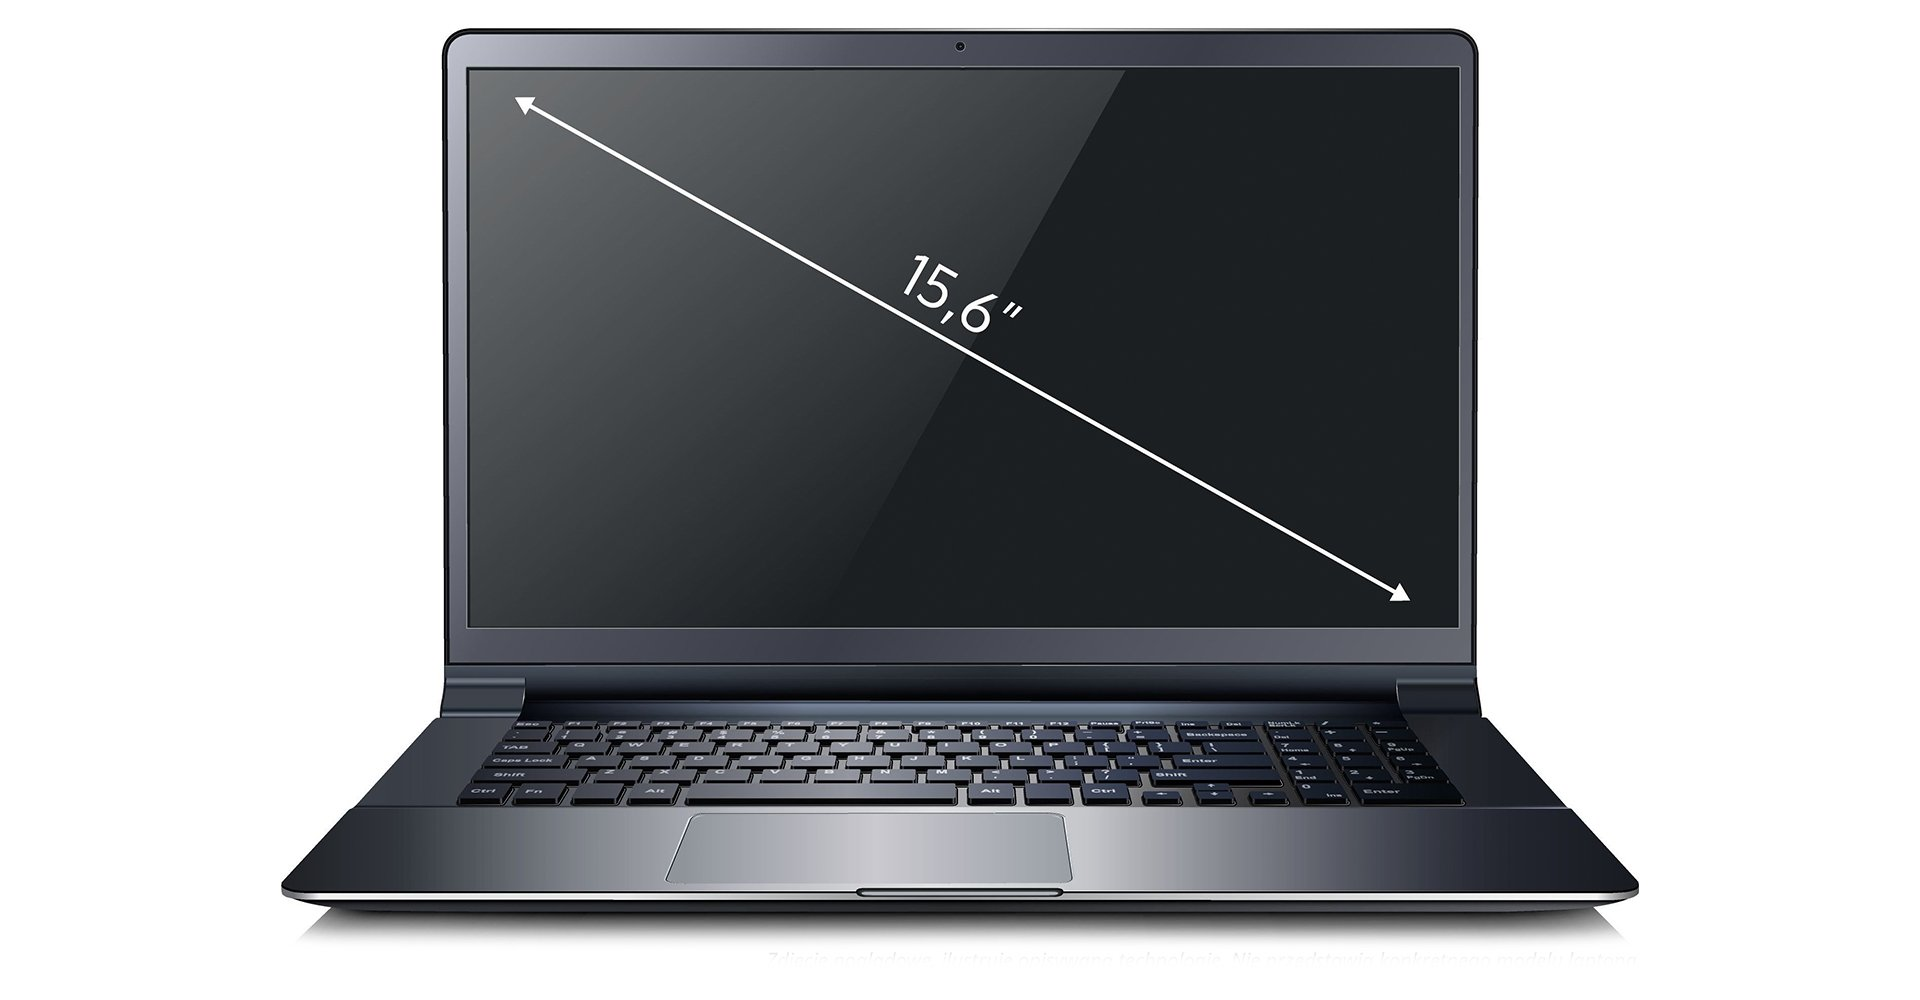 Acer Aspire 3 (NX.GY9EP.015) 12 GB RAM/ 2TB HDD/ Windows 10 Home                             15.6-tollise diagonaaliga